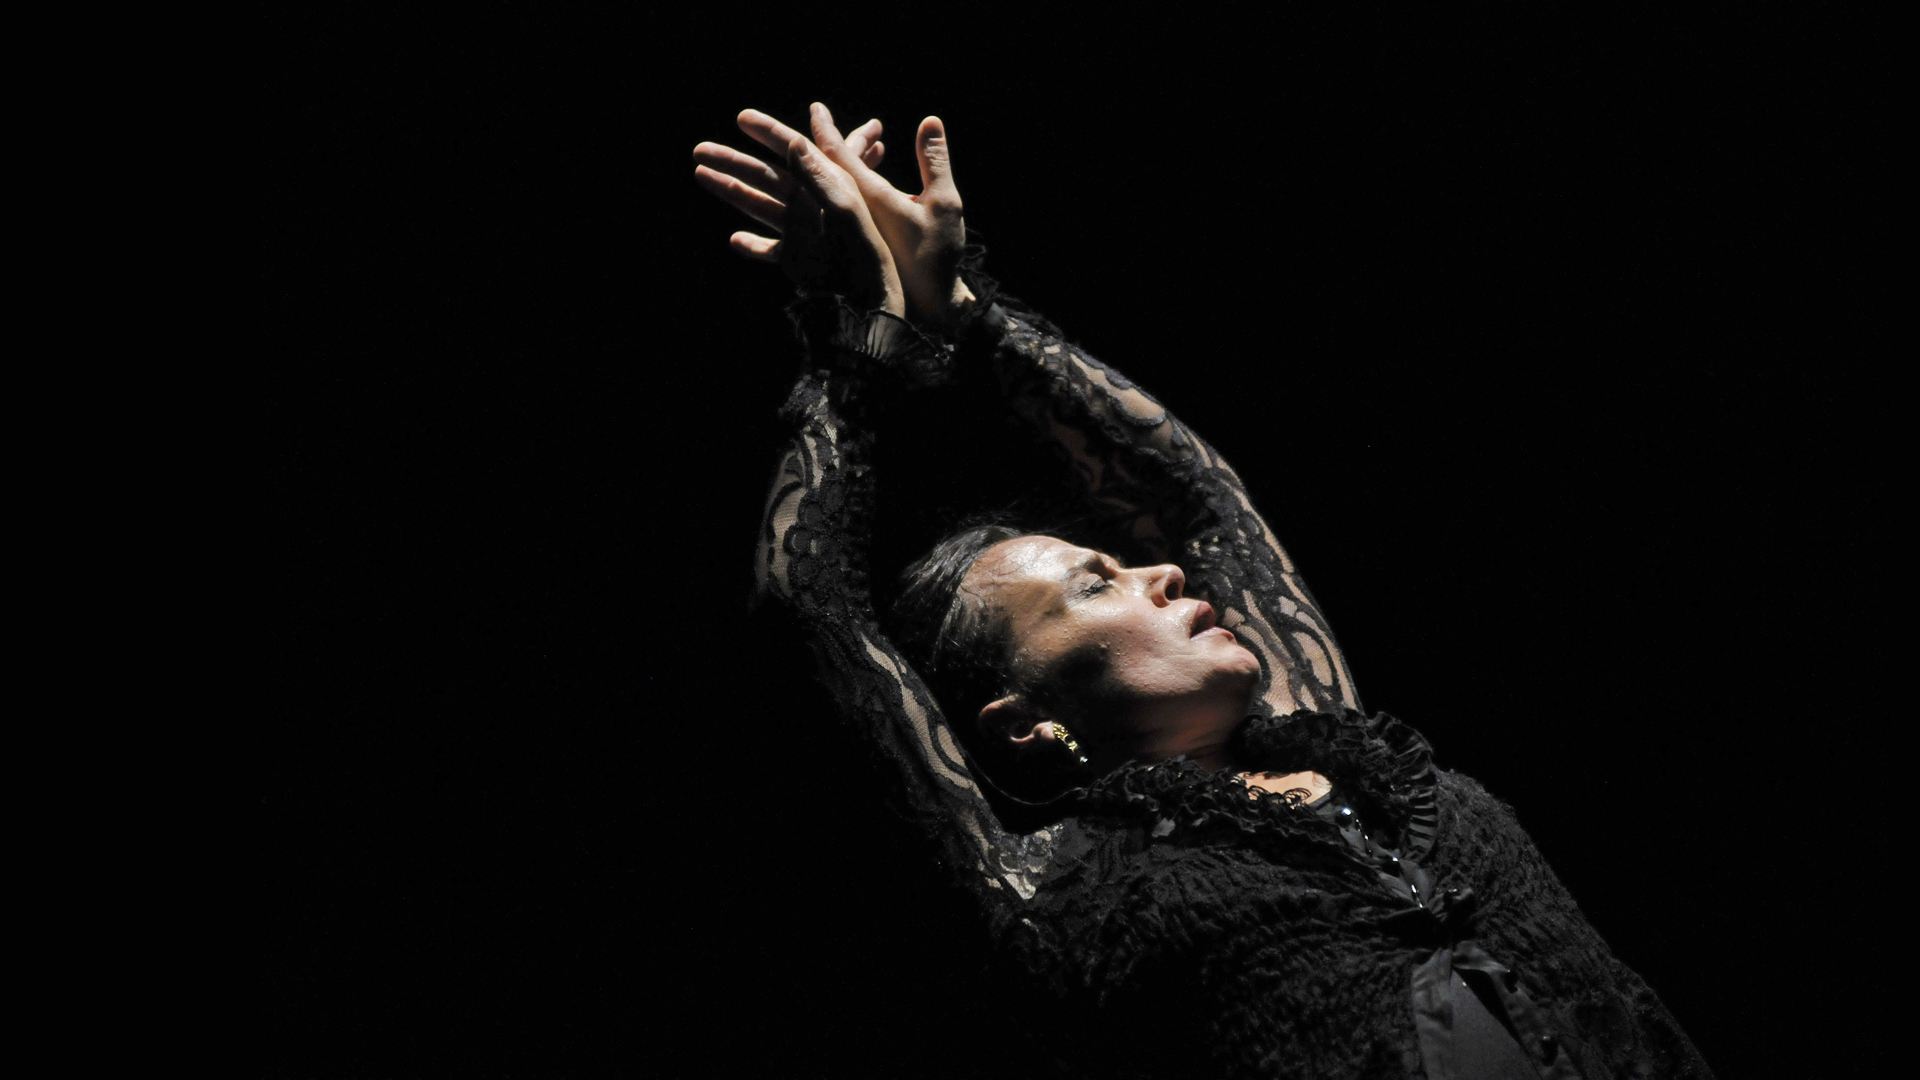 Dancer, wearing ornate black top, leans back with arms stretched over face tipped upward, eyes closed.